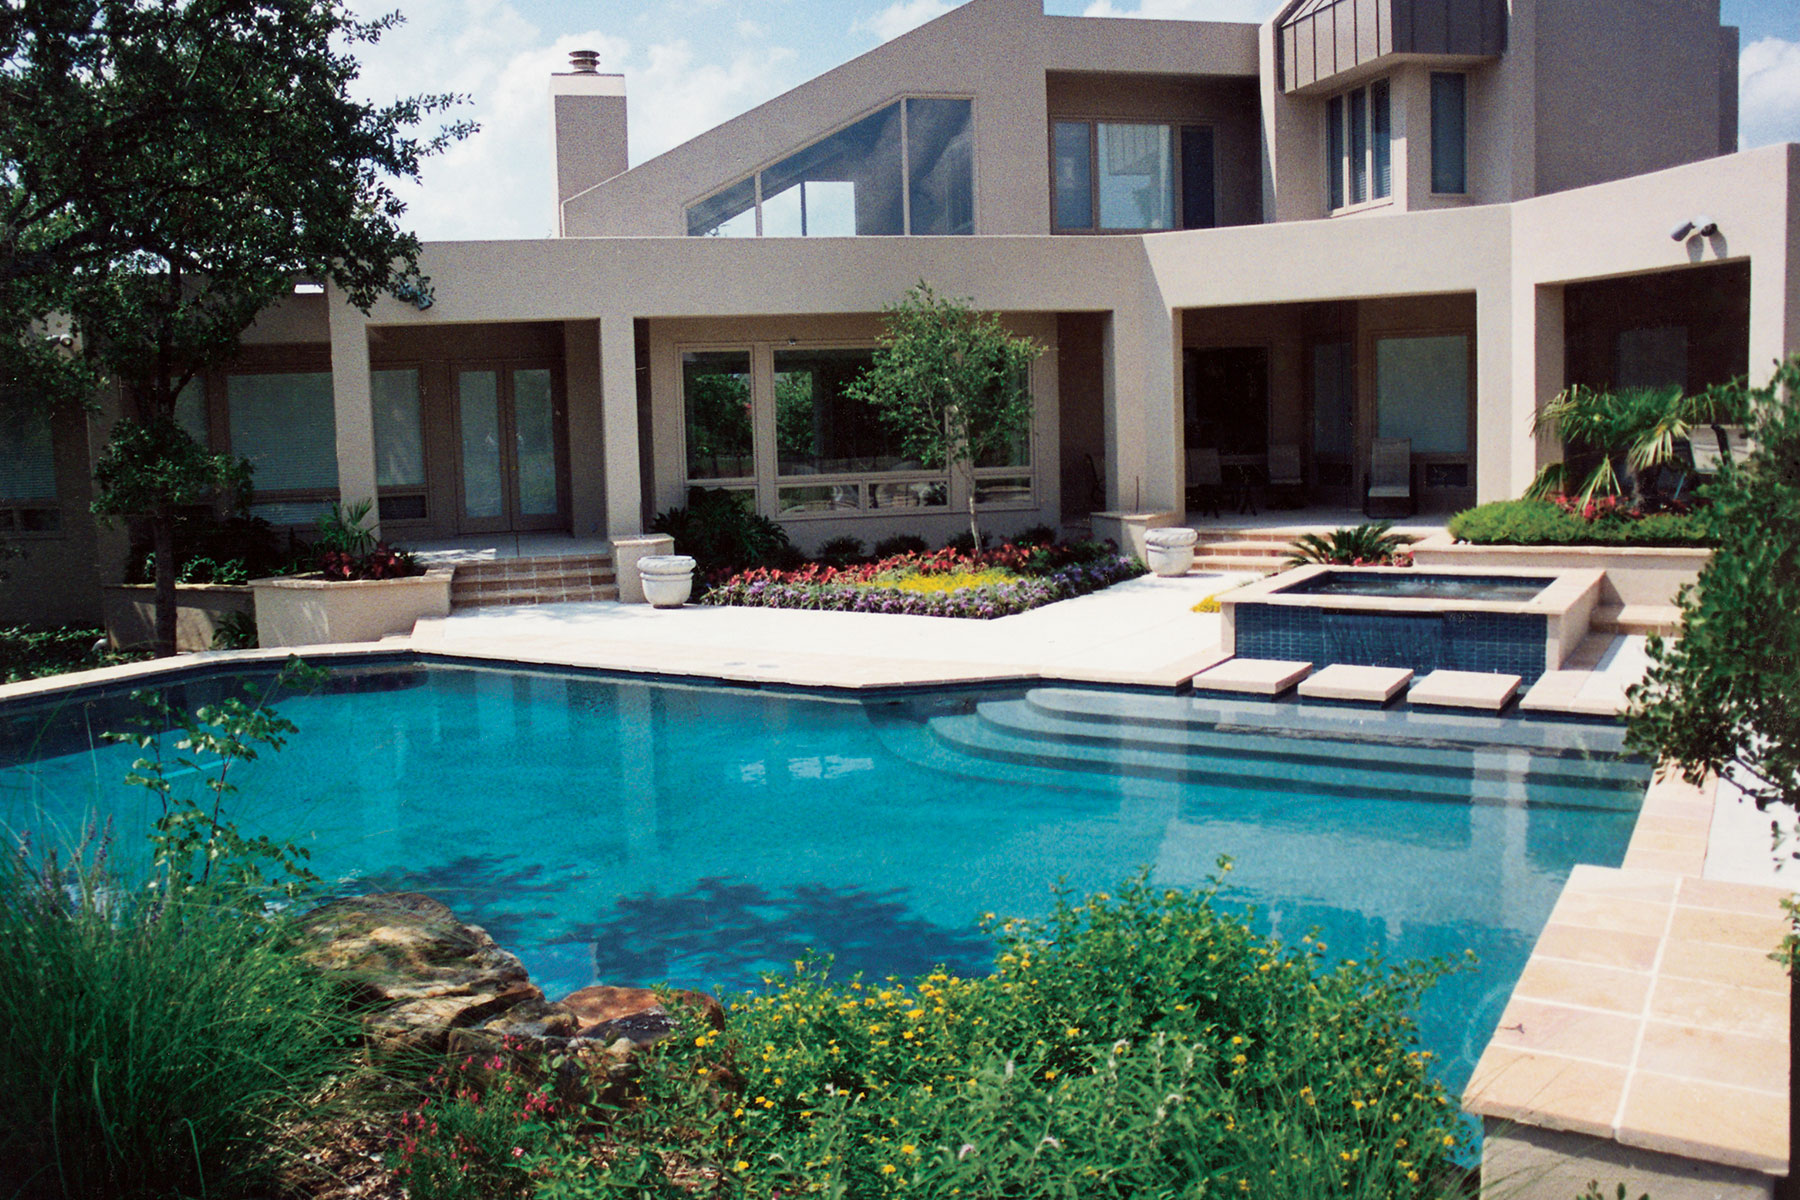 How much does a custom pool cost keith zars pools for How much is it to build a swimming pool